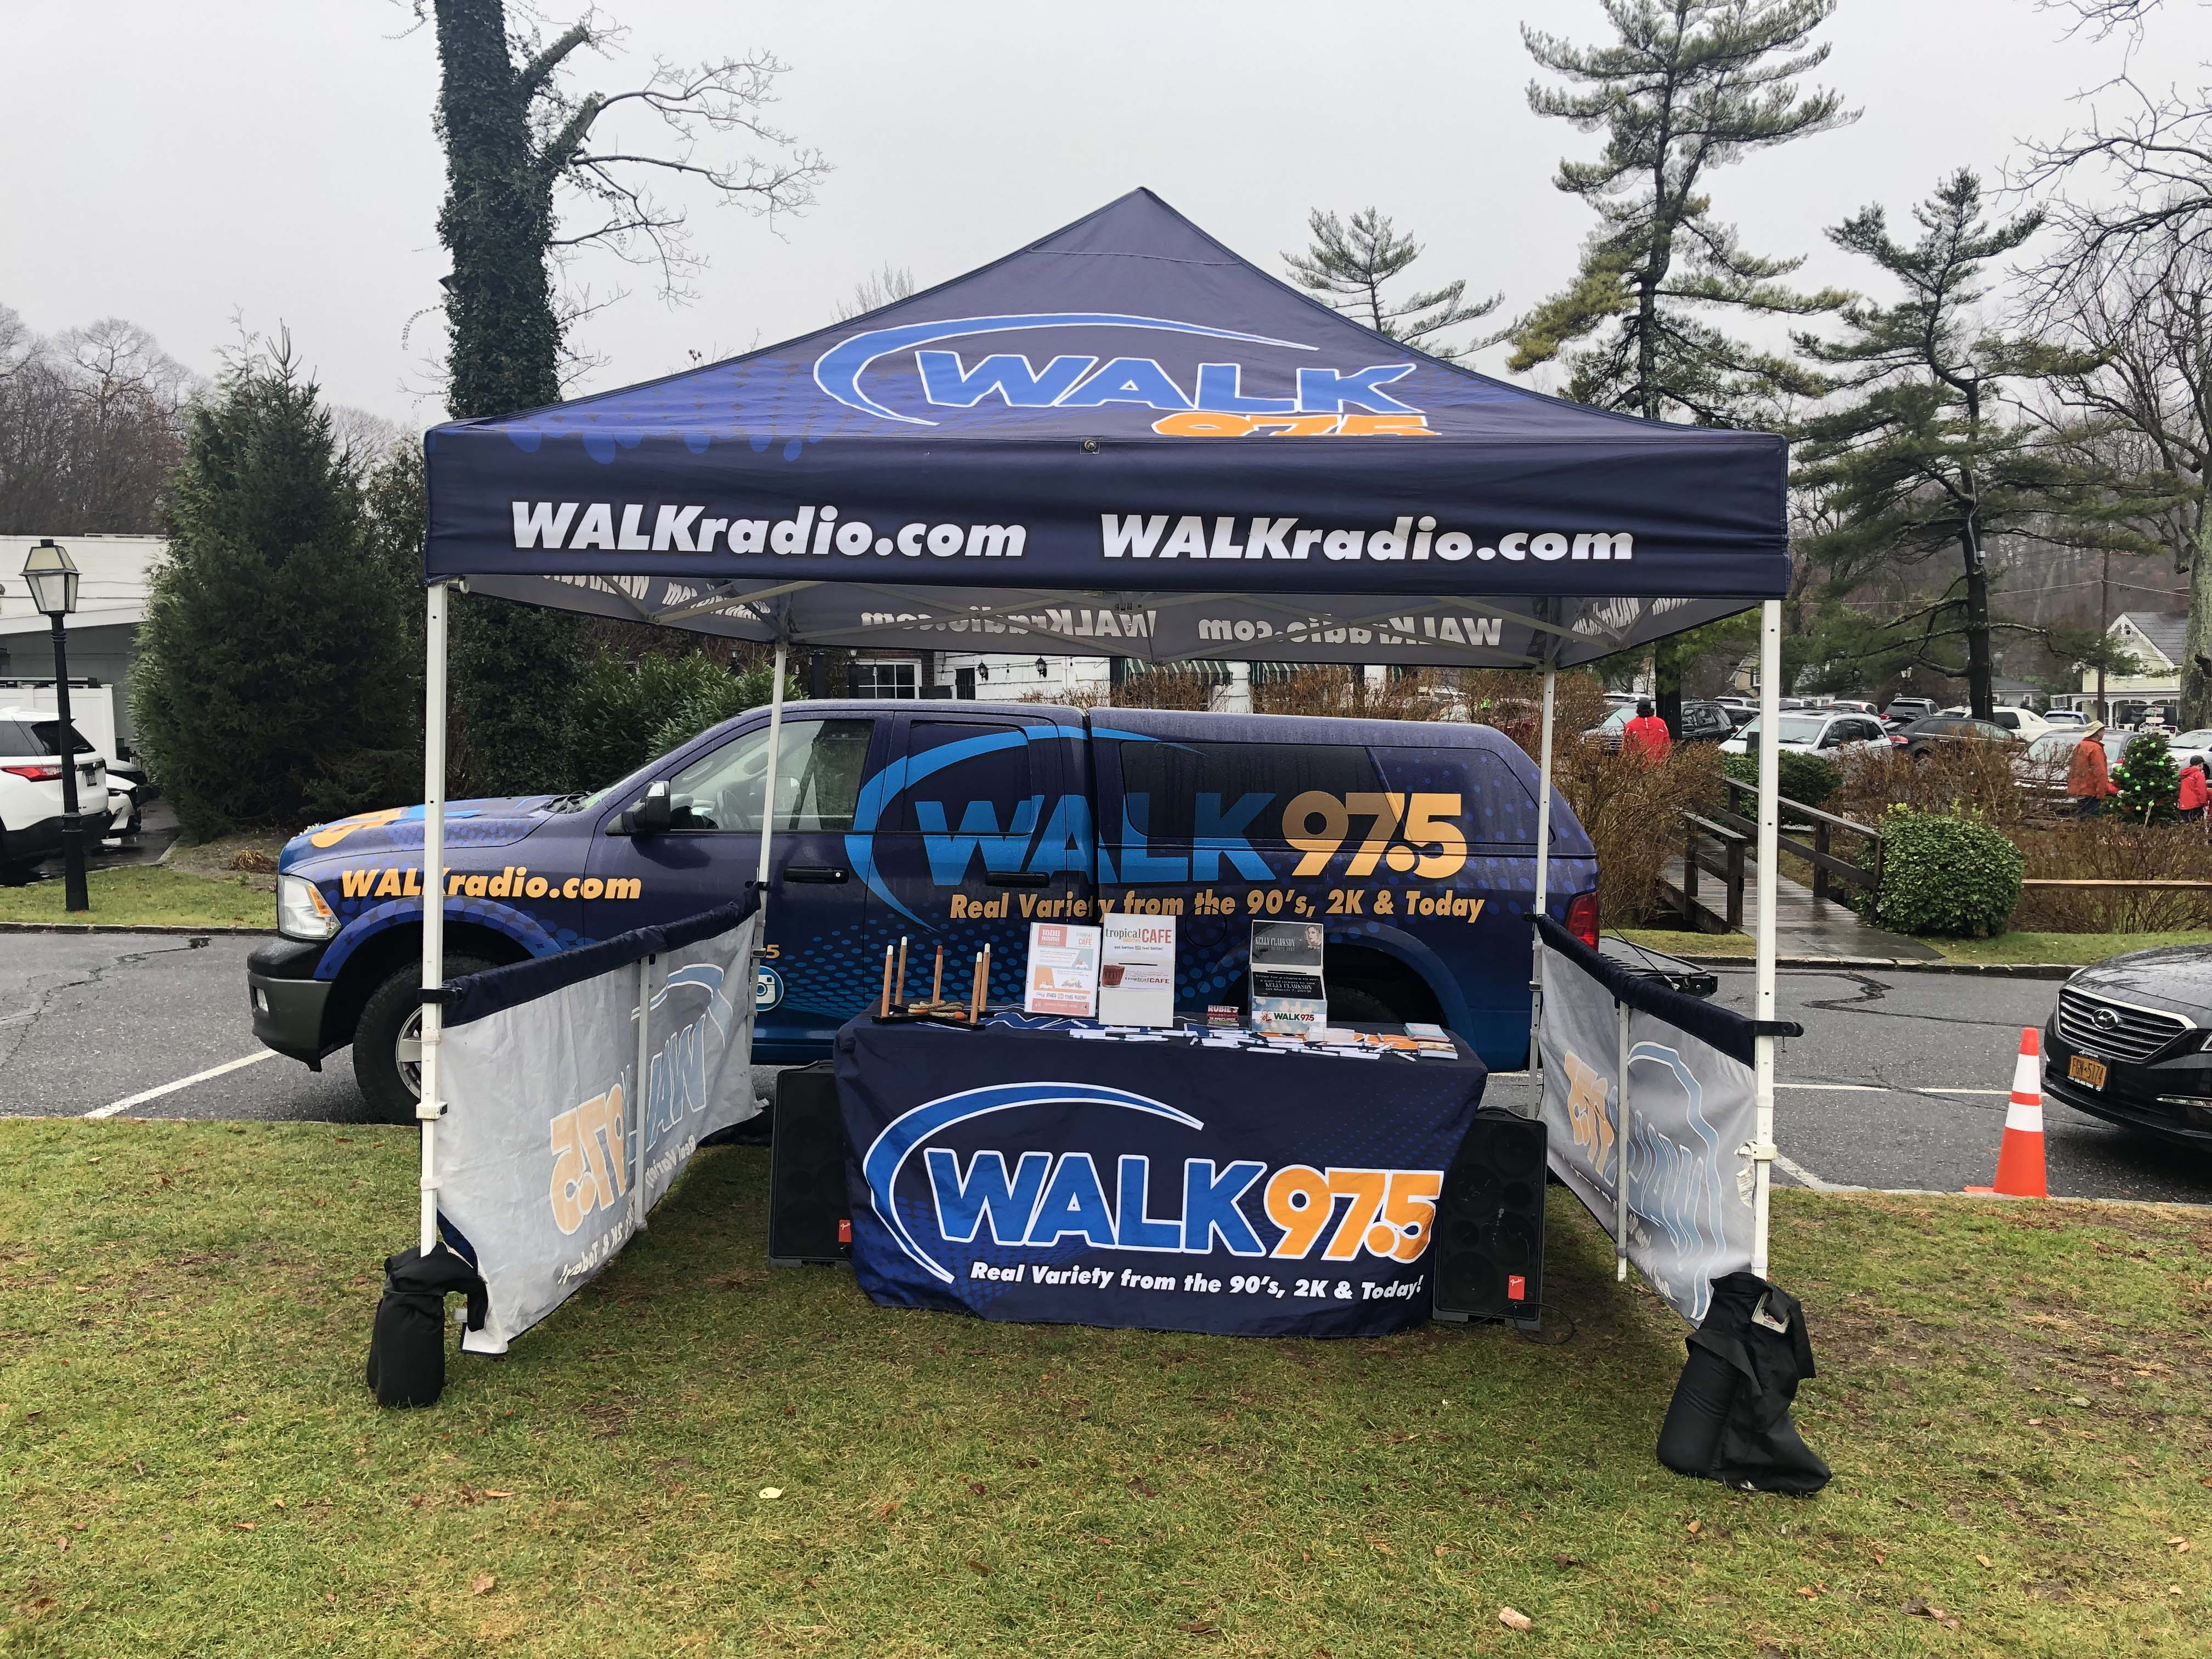 WALK 97.5 at Stony Brooke Village Center